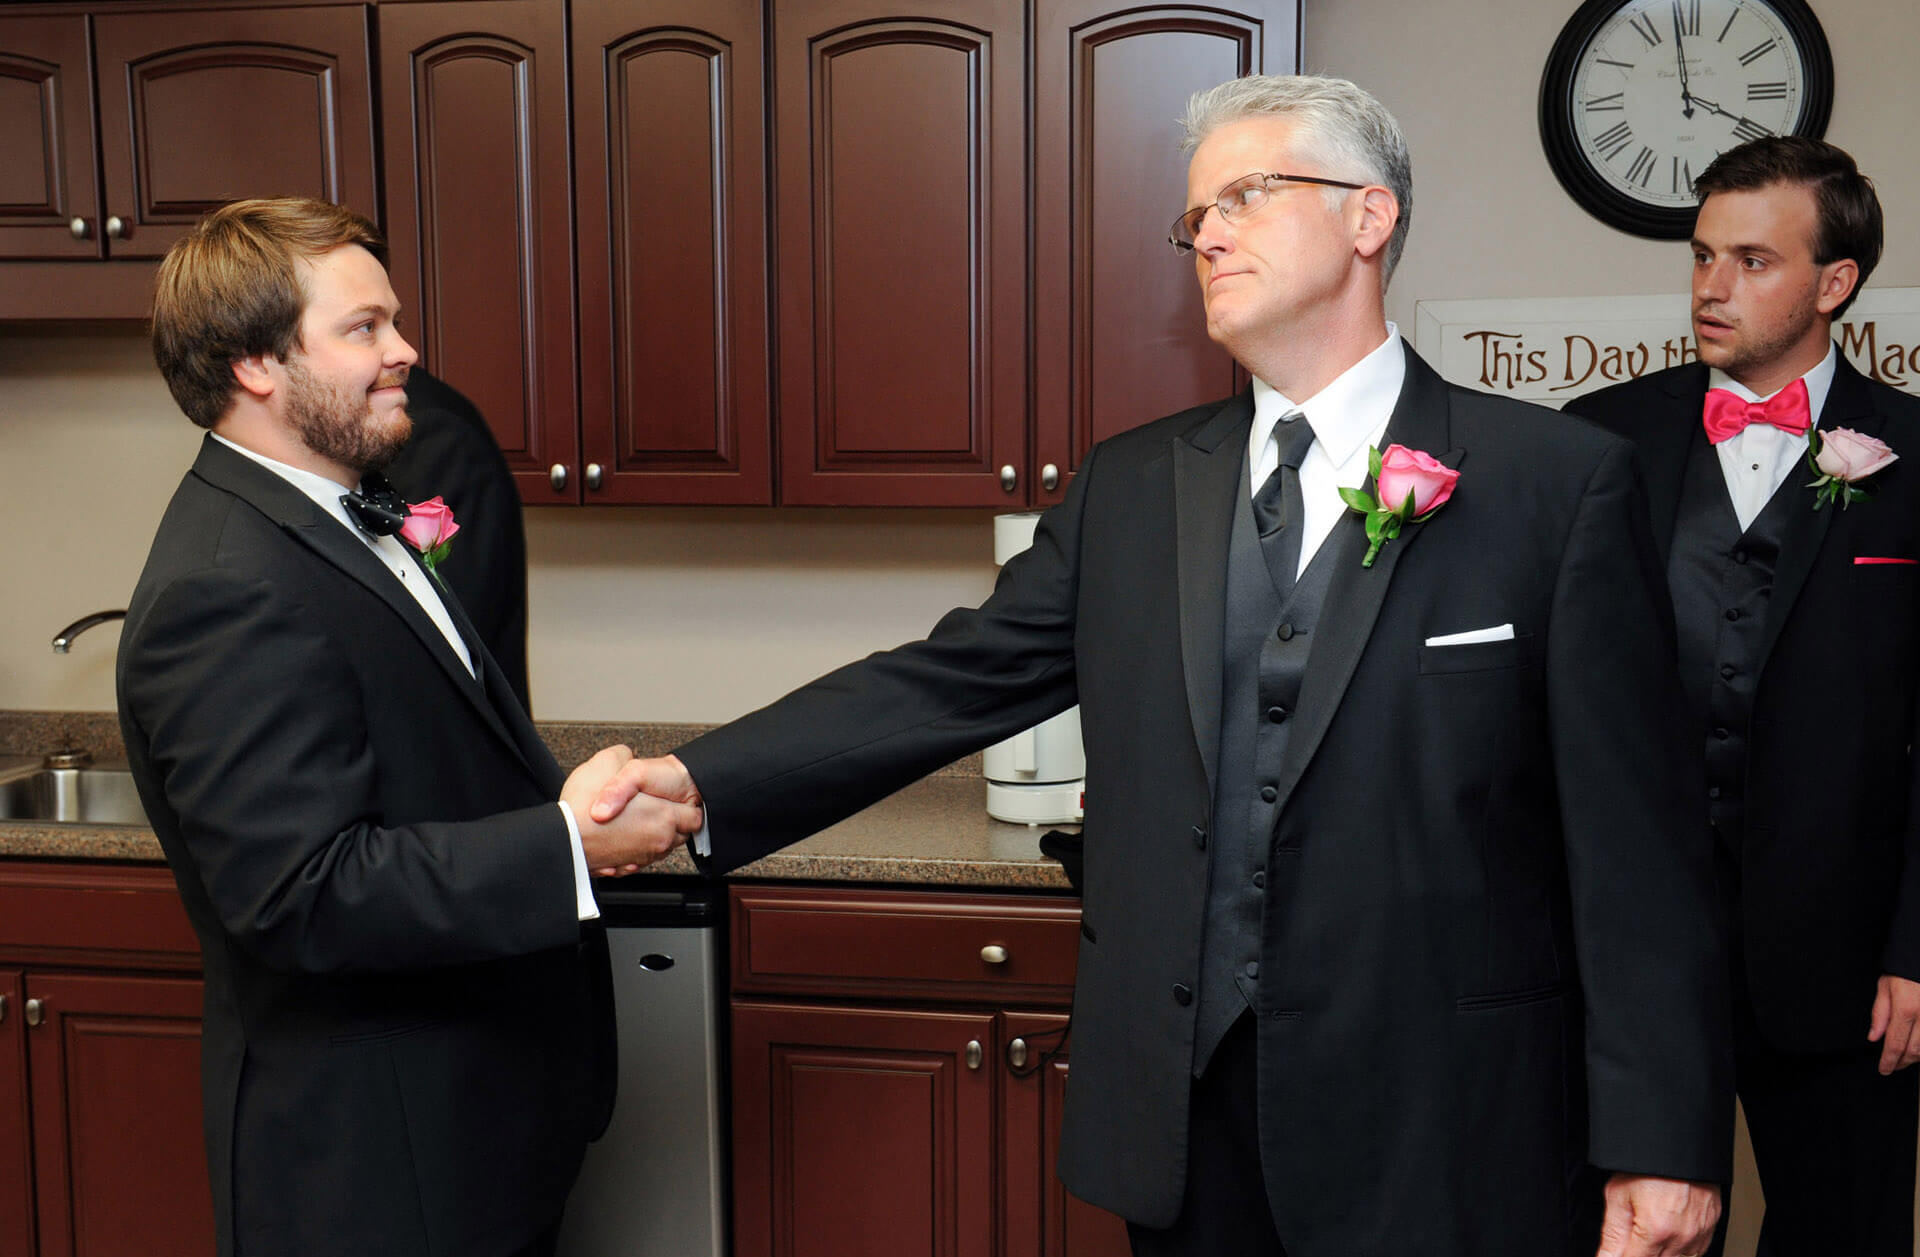 Th father of the bride clutches the groom's hand with a menacing look before the groom's Macomb County, Michigan wedding.